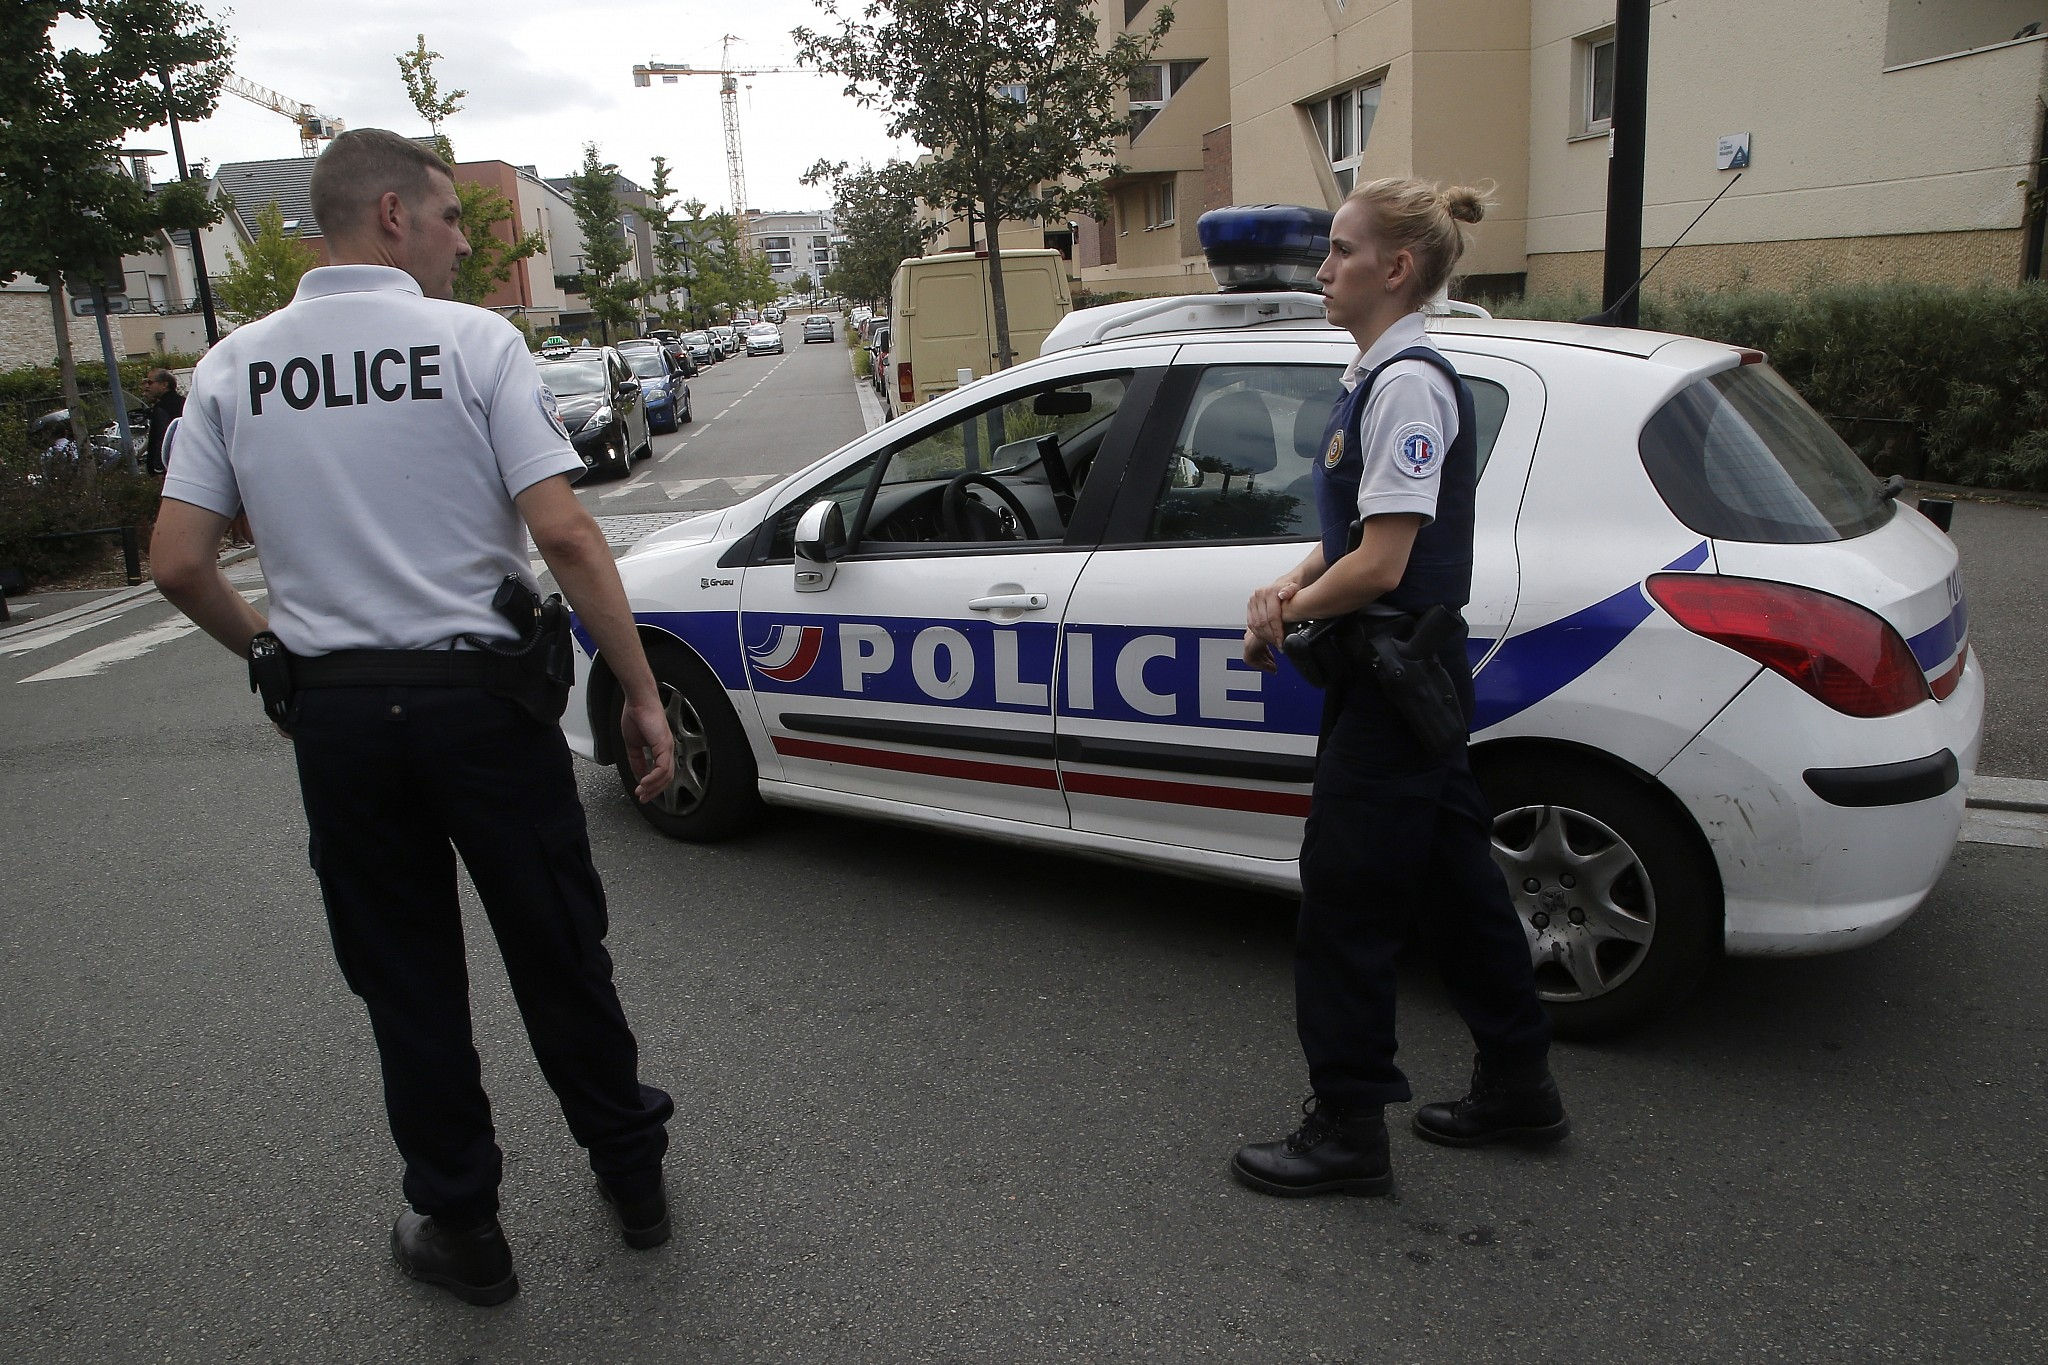 Knifeman dead after killing mum, sister in town near Paris